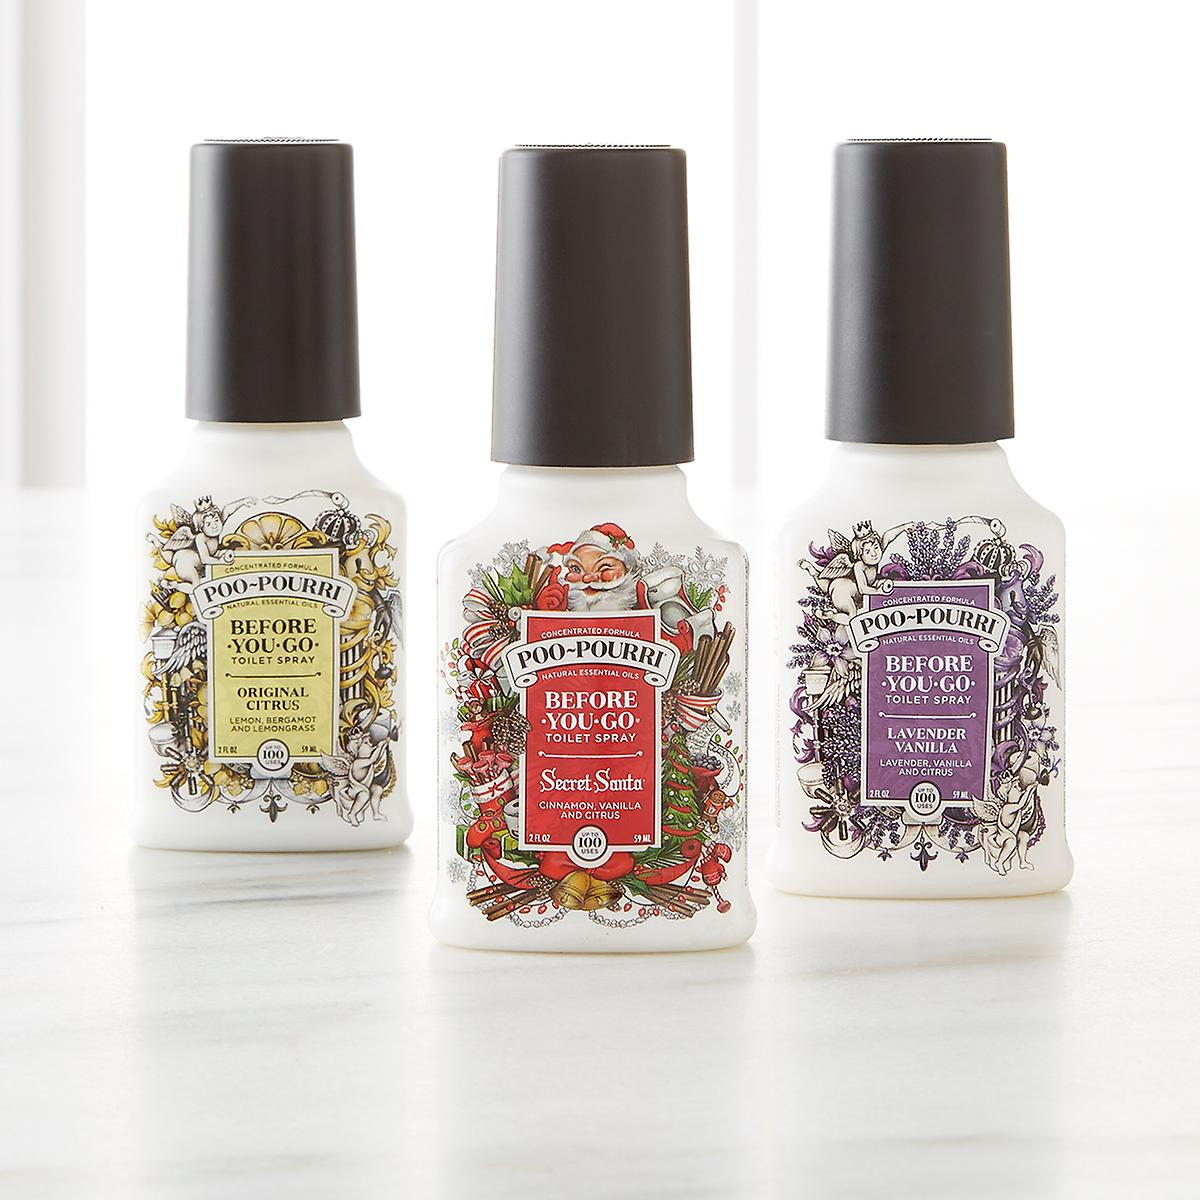 2 oz. Poo-Pourri Sprayers